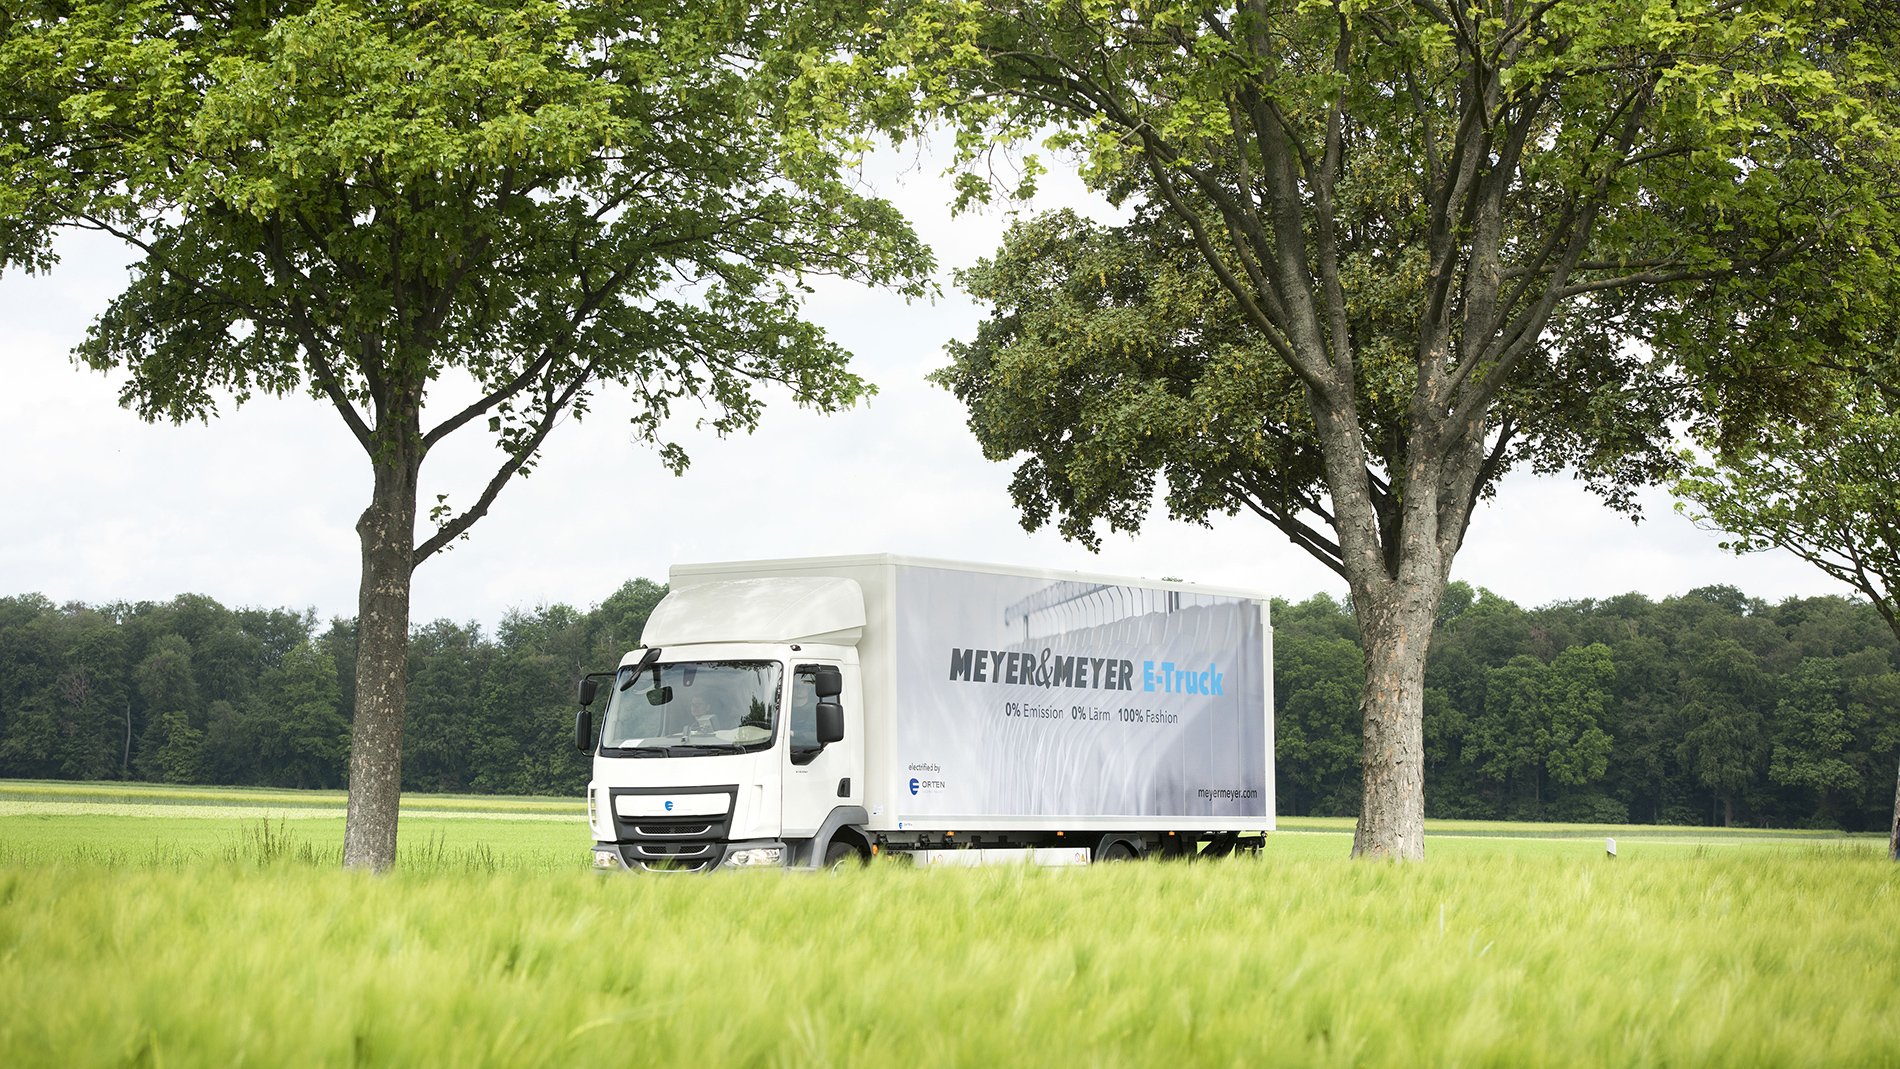 Meyer&Meyer supplies clothing stores in Peine and the surrounding area using an electric lorry. (Photo: Meyer&Meyer)